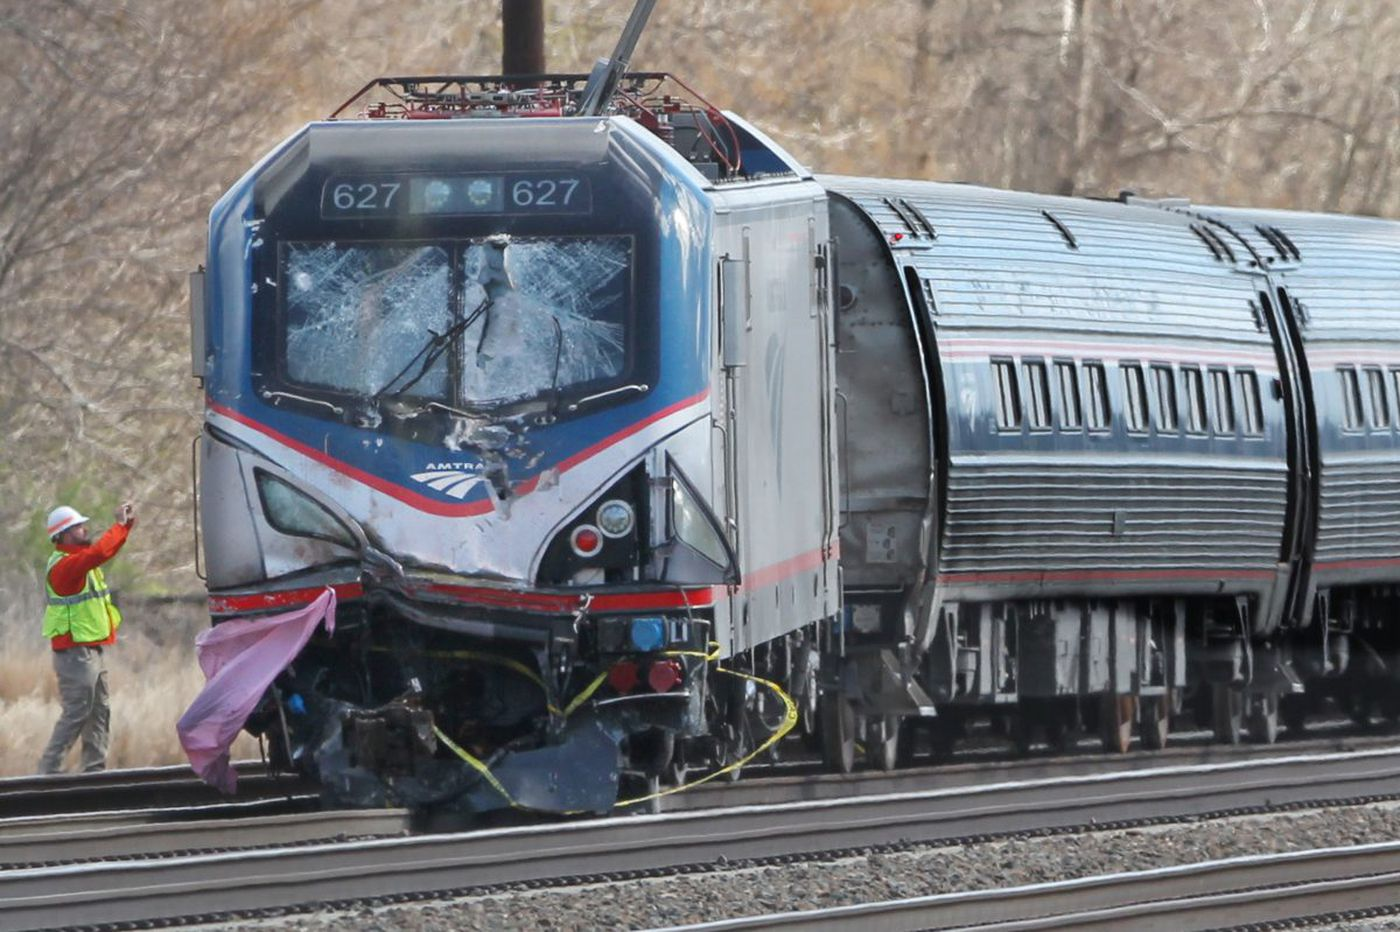 Amtrak's CEO talks to Congress about safety issues raised by 2016 Chester crash